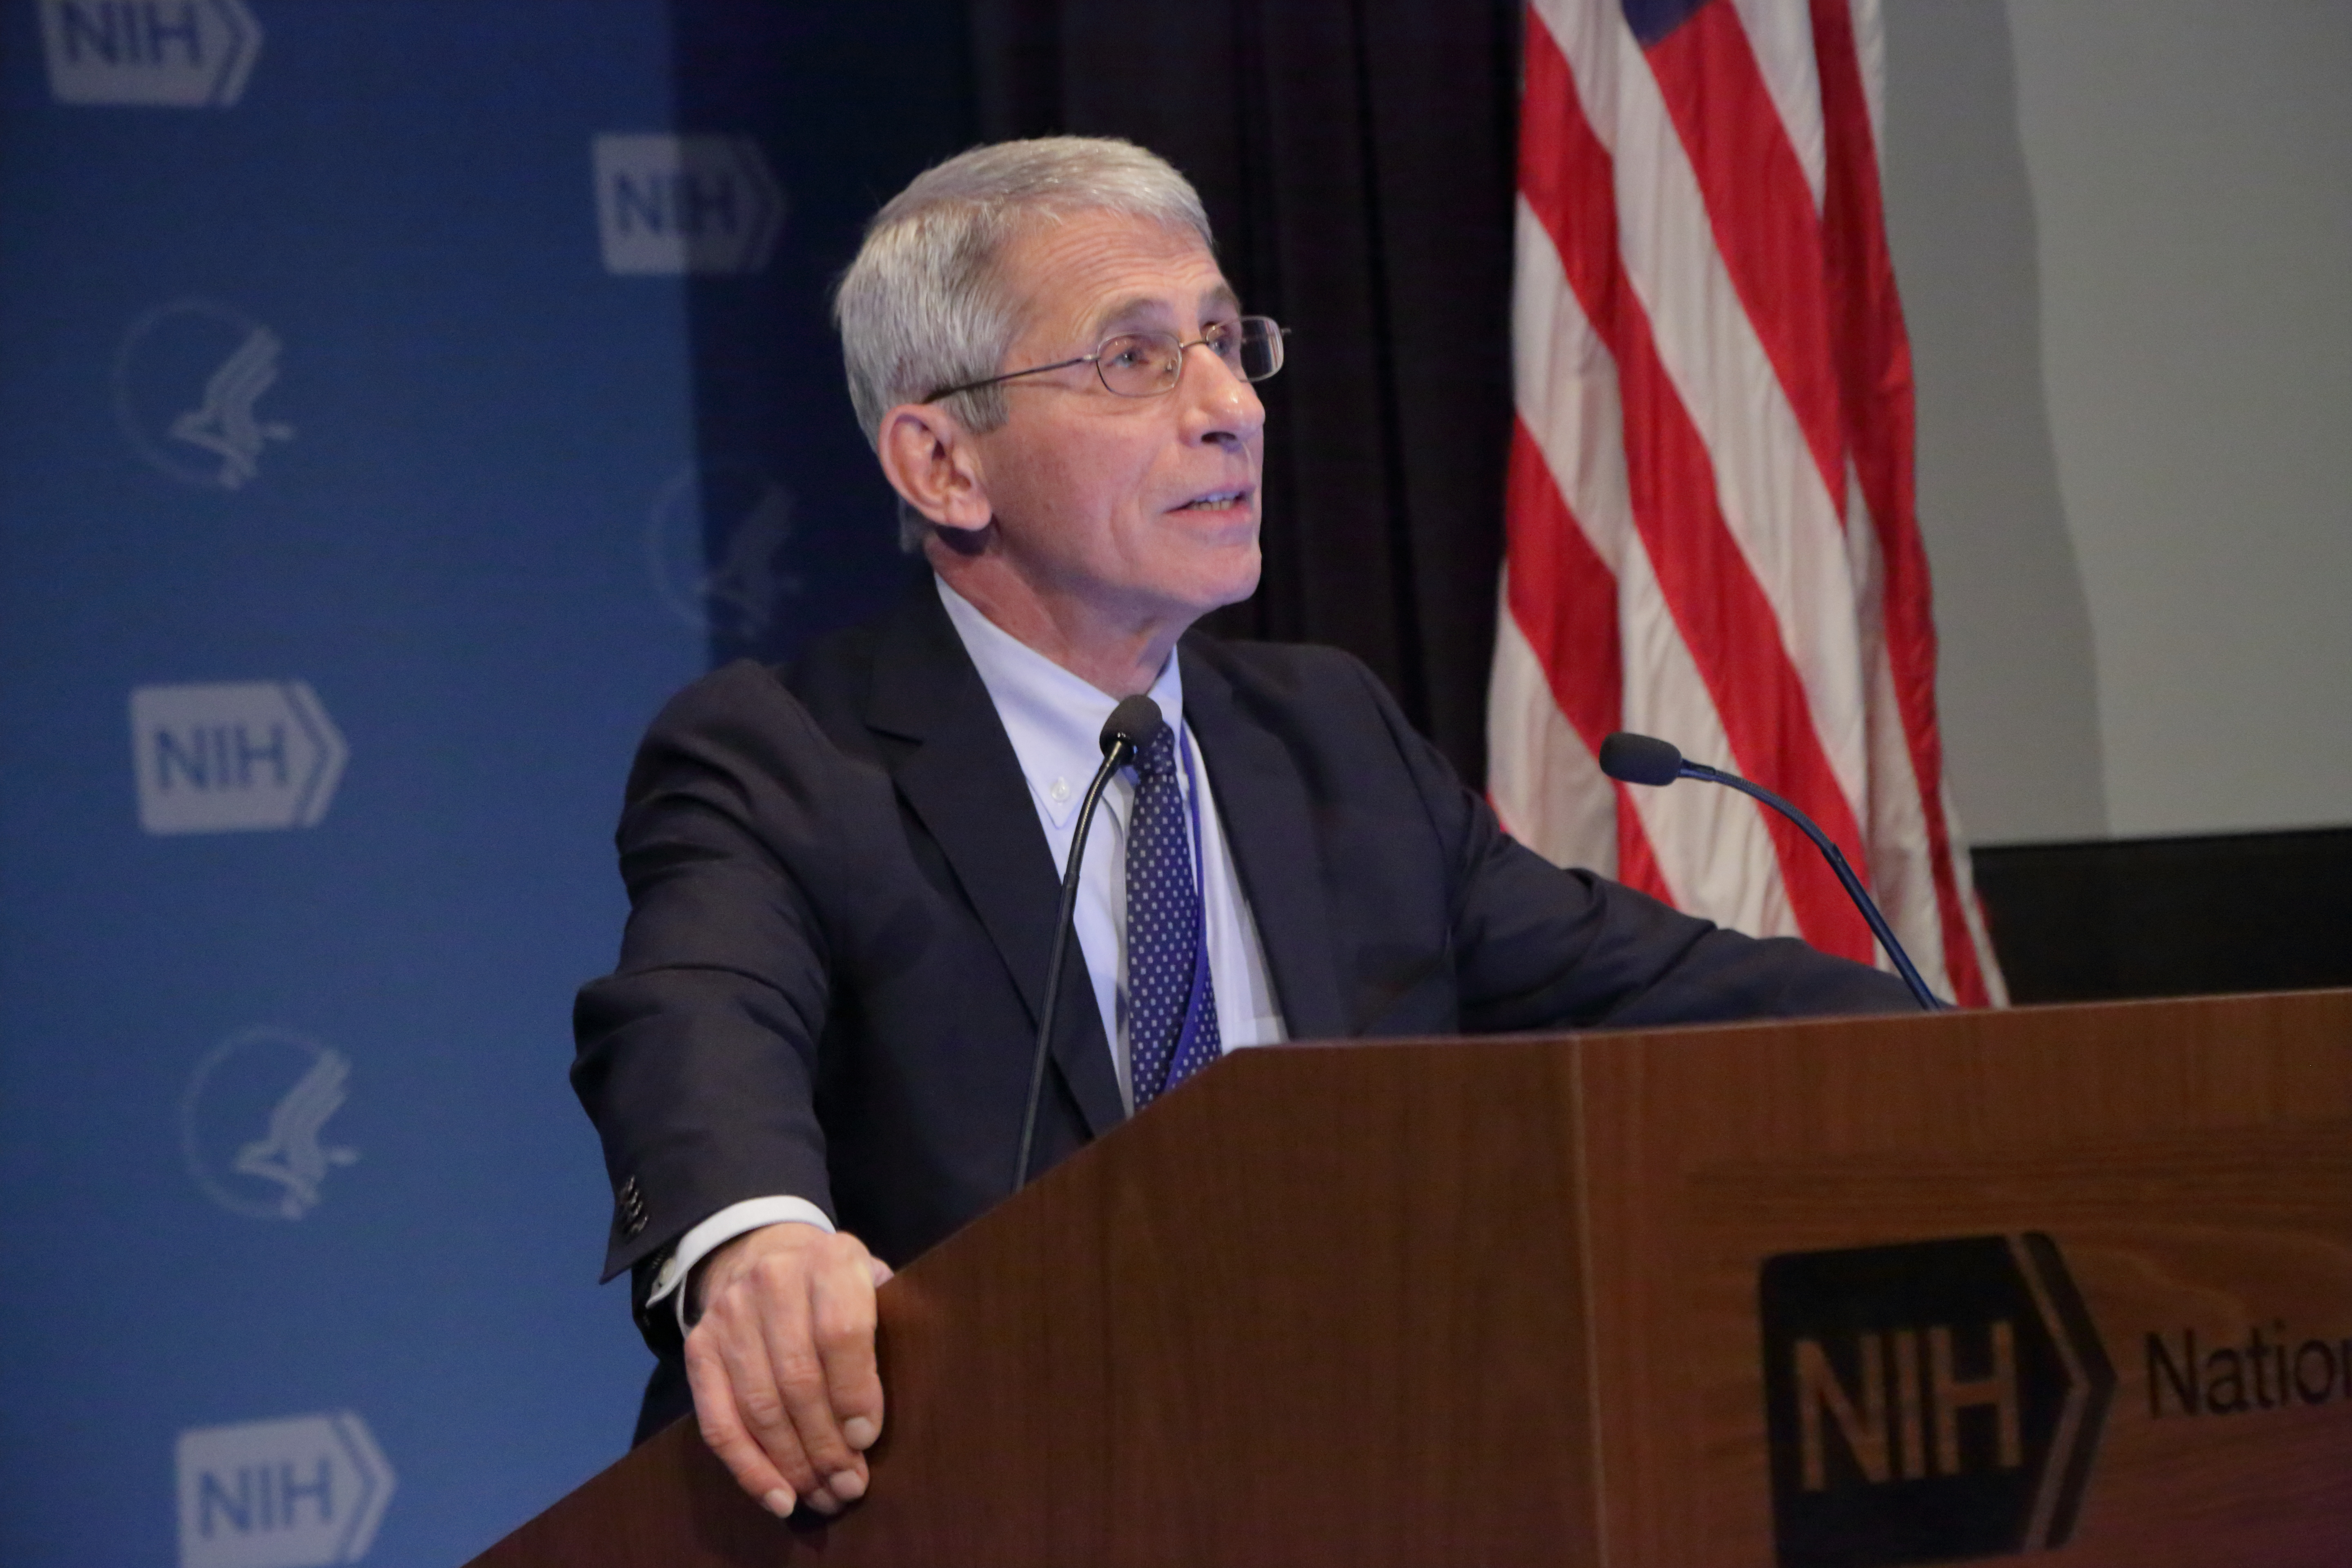 Fauci warns lawmakers of spikes in COVID-19 cases if states reopen too quickly